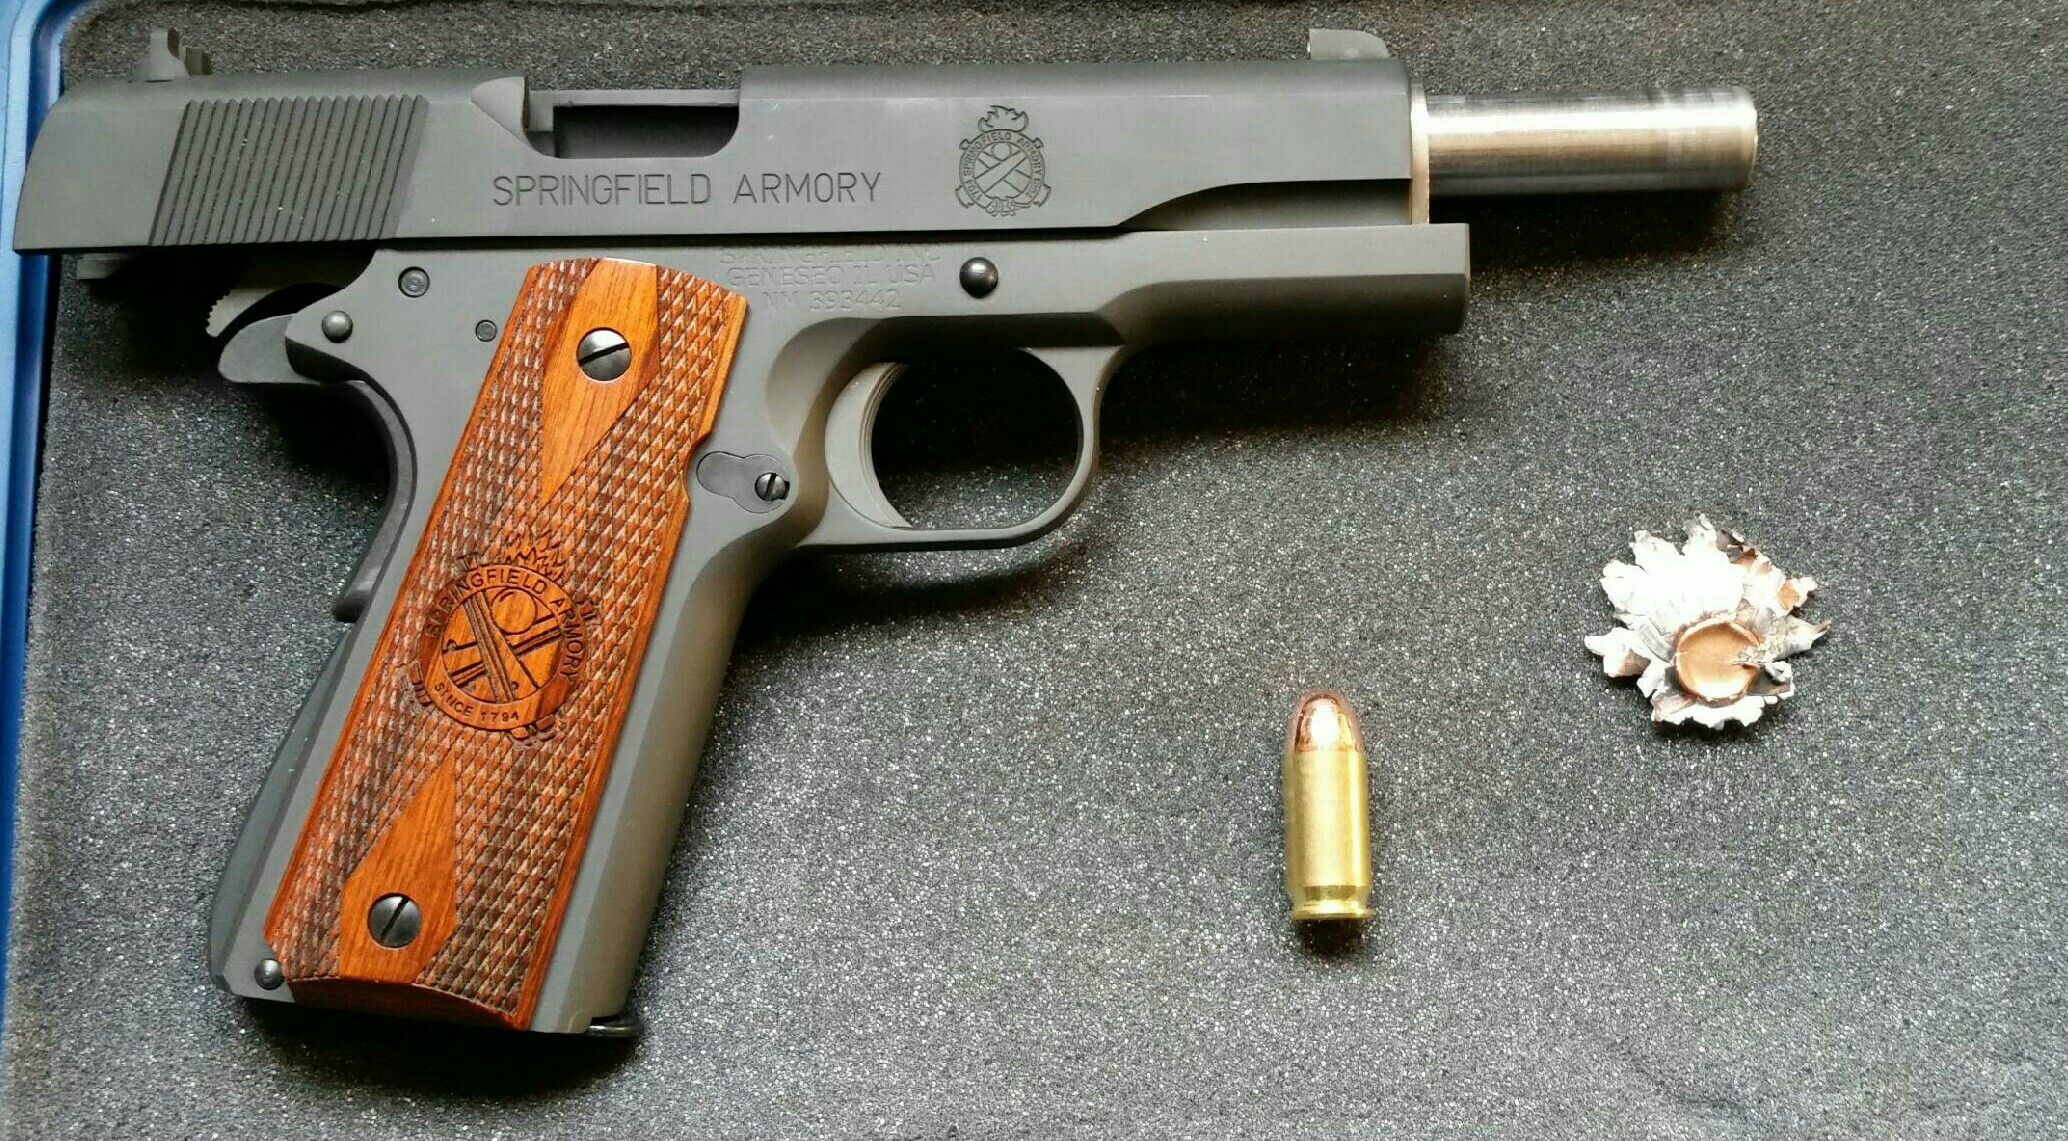 My Springfield Armory 1911A1. With a .45 .a.c.p cartridge next to it and an impacted round that I dug out of the old water heater.